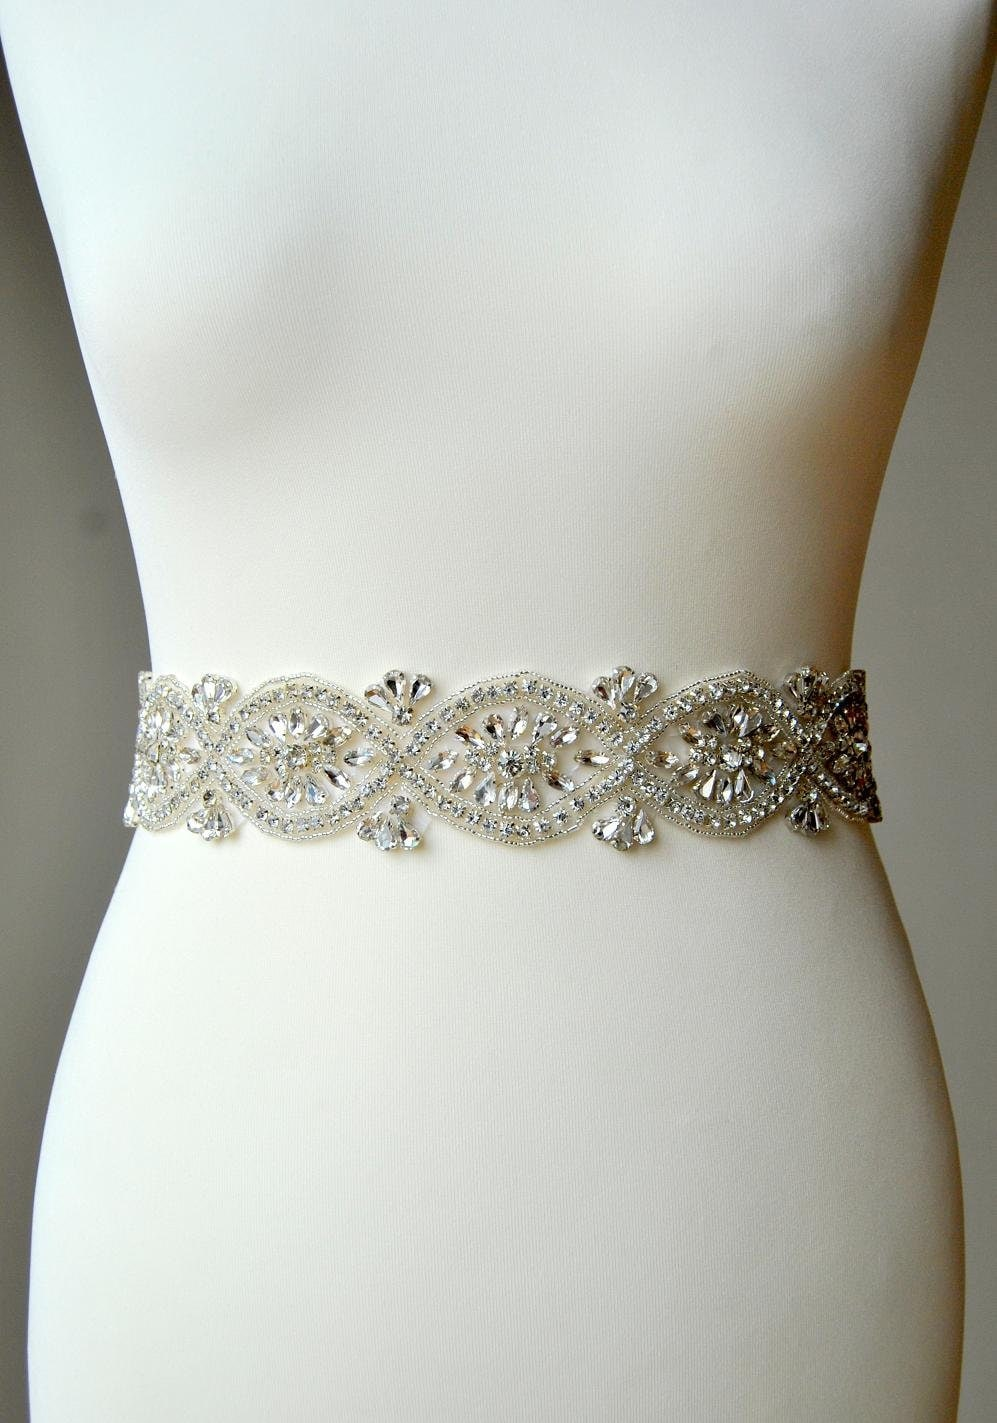 Sale bridal sash wedding dress sash belt rhinestone sash for Wedding dress belt sash